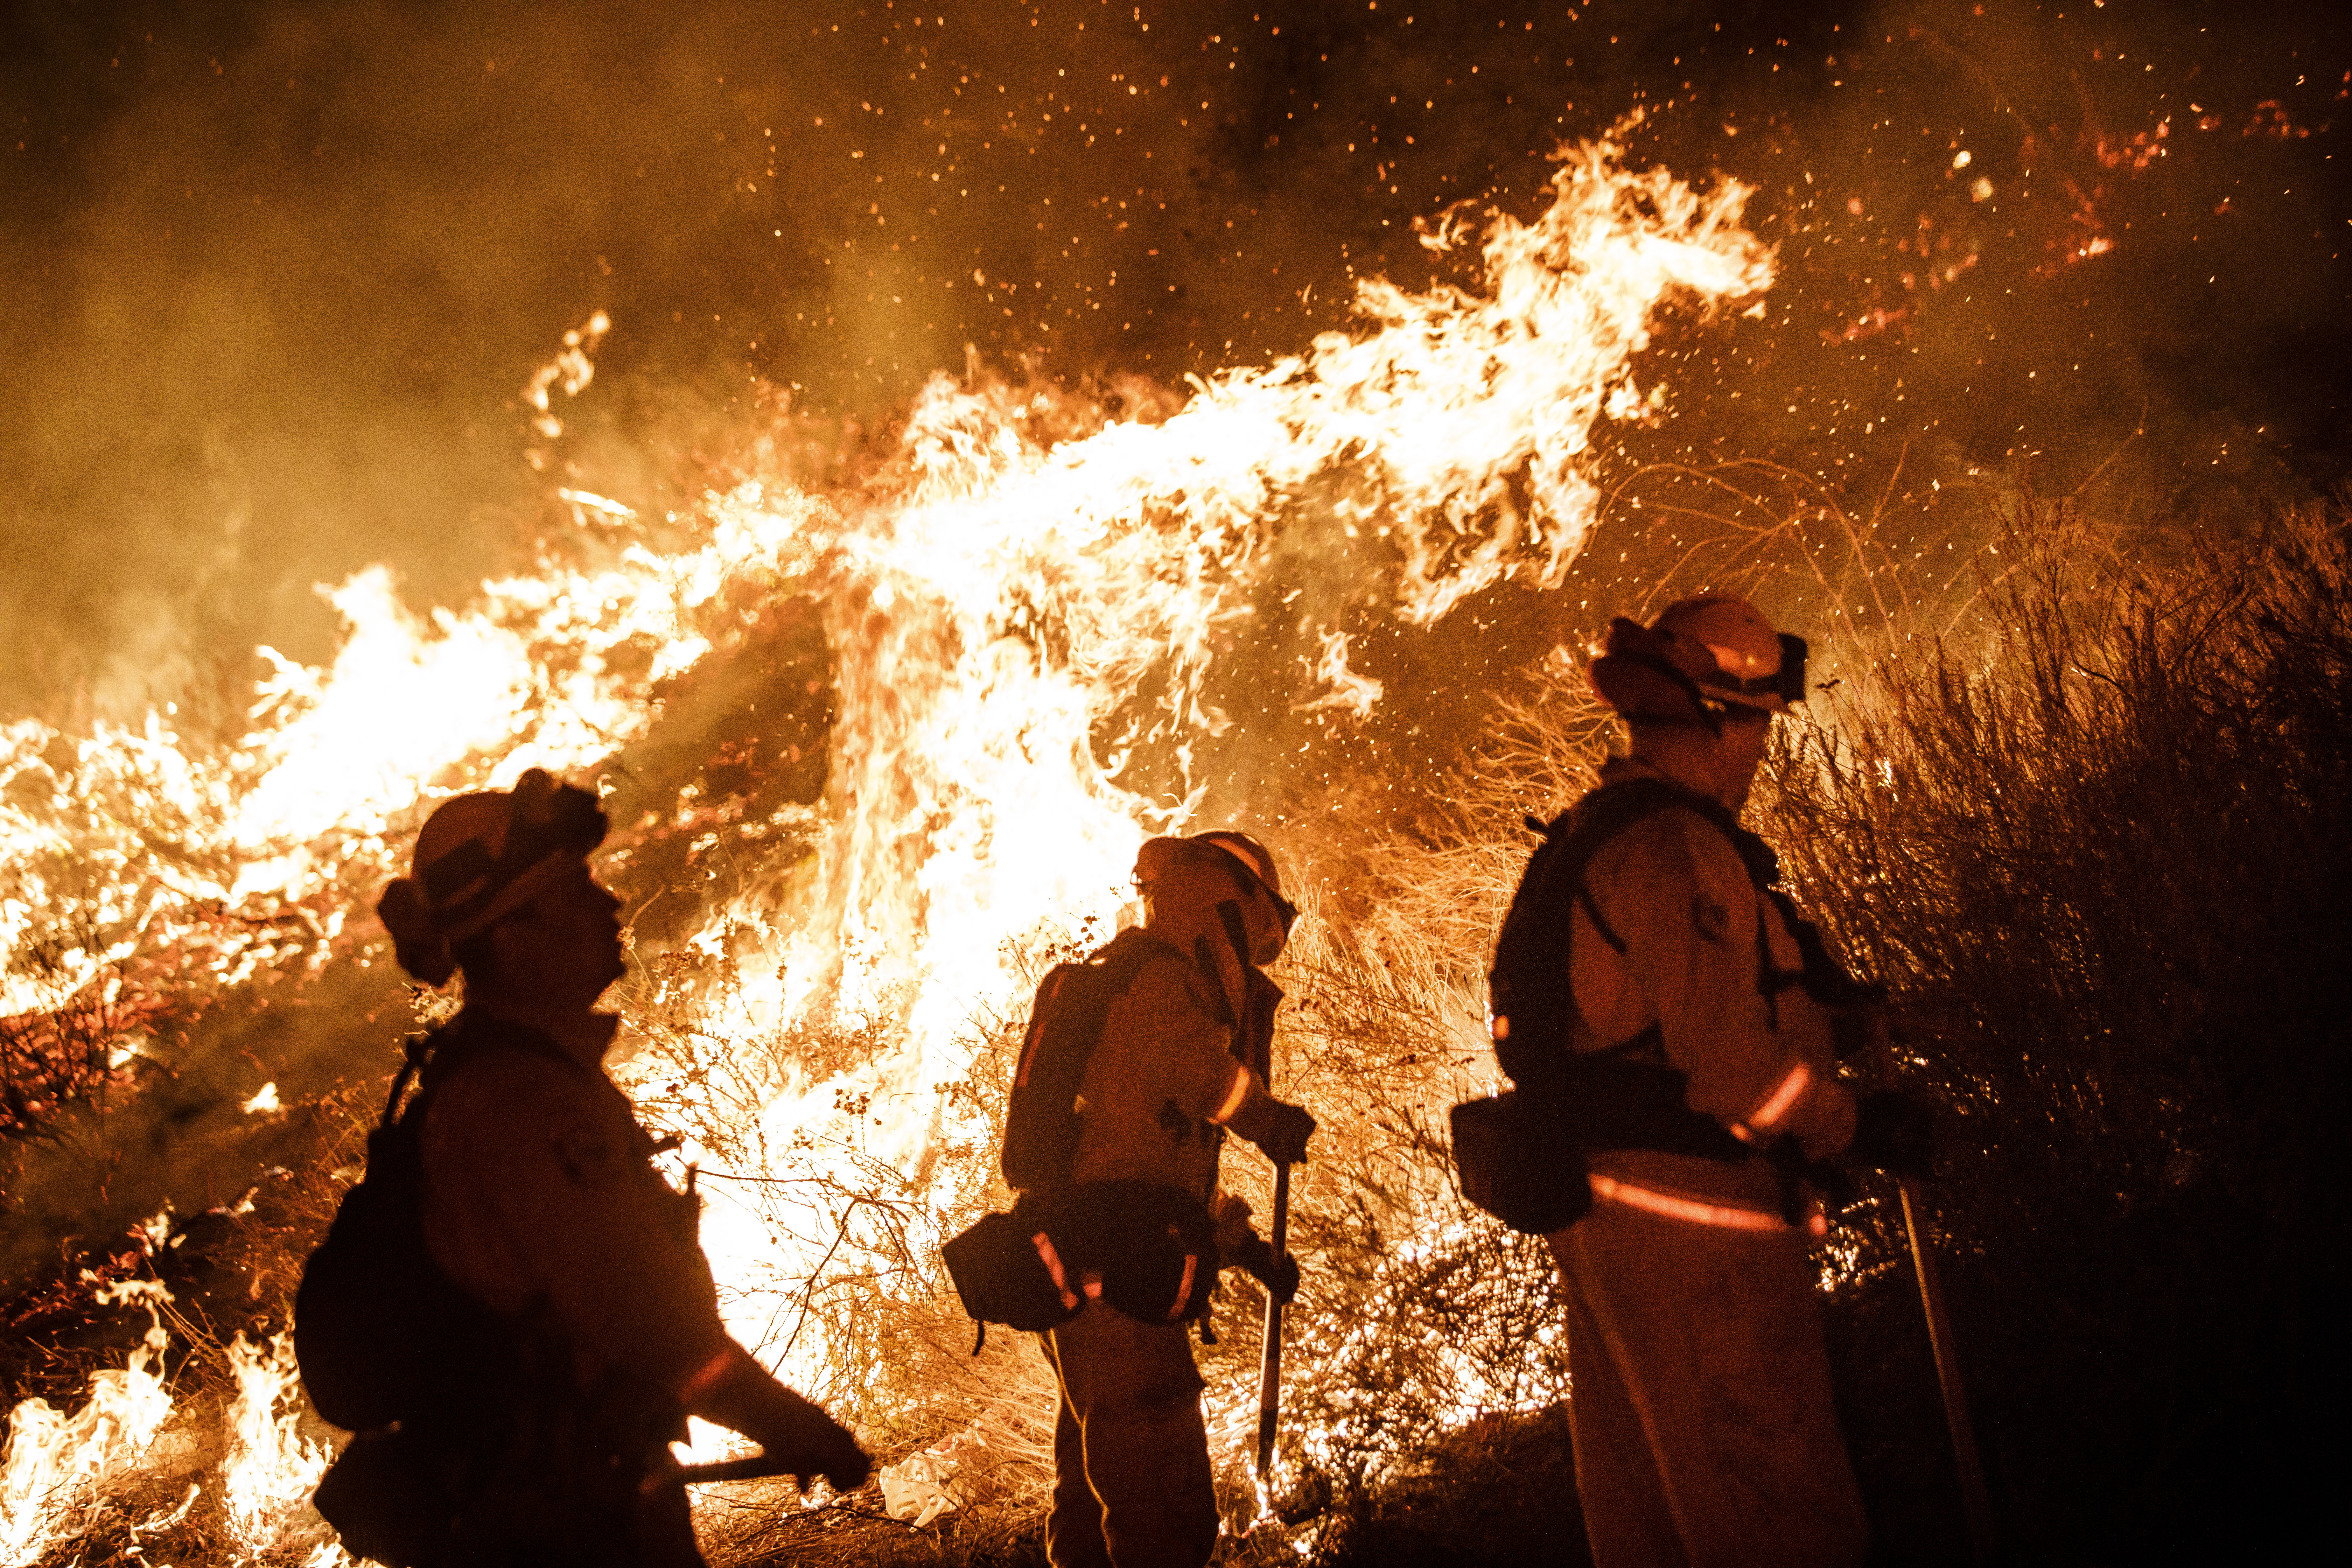 Firefighters conduct a burn operation to remove fuel around homes on Grand Ave as the Holy Fire grows to more than 10,000 acres as the wildfire comes closer to Lake Elsinore, Calif., on Aug. 10, 2018.